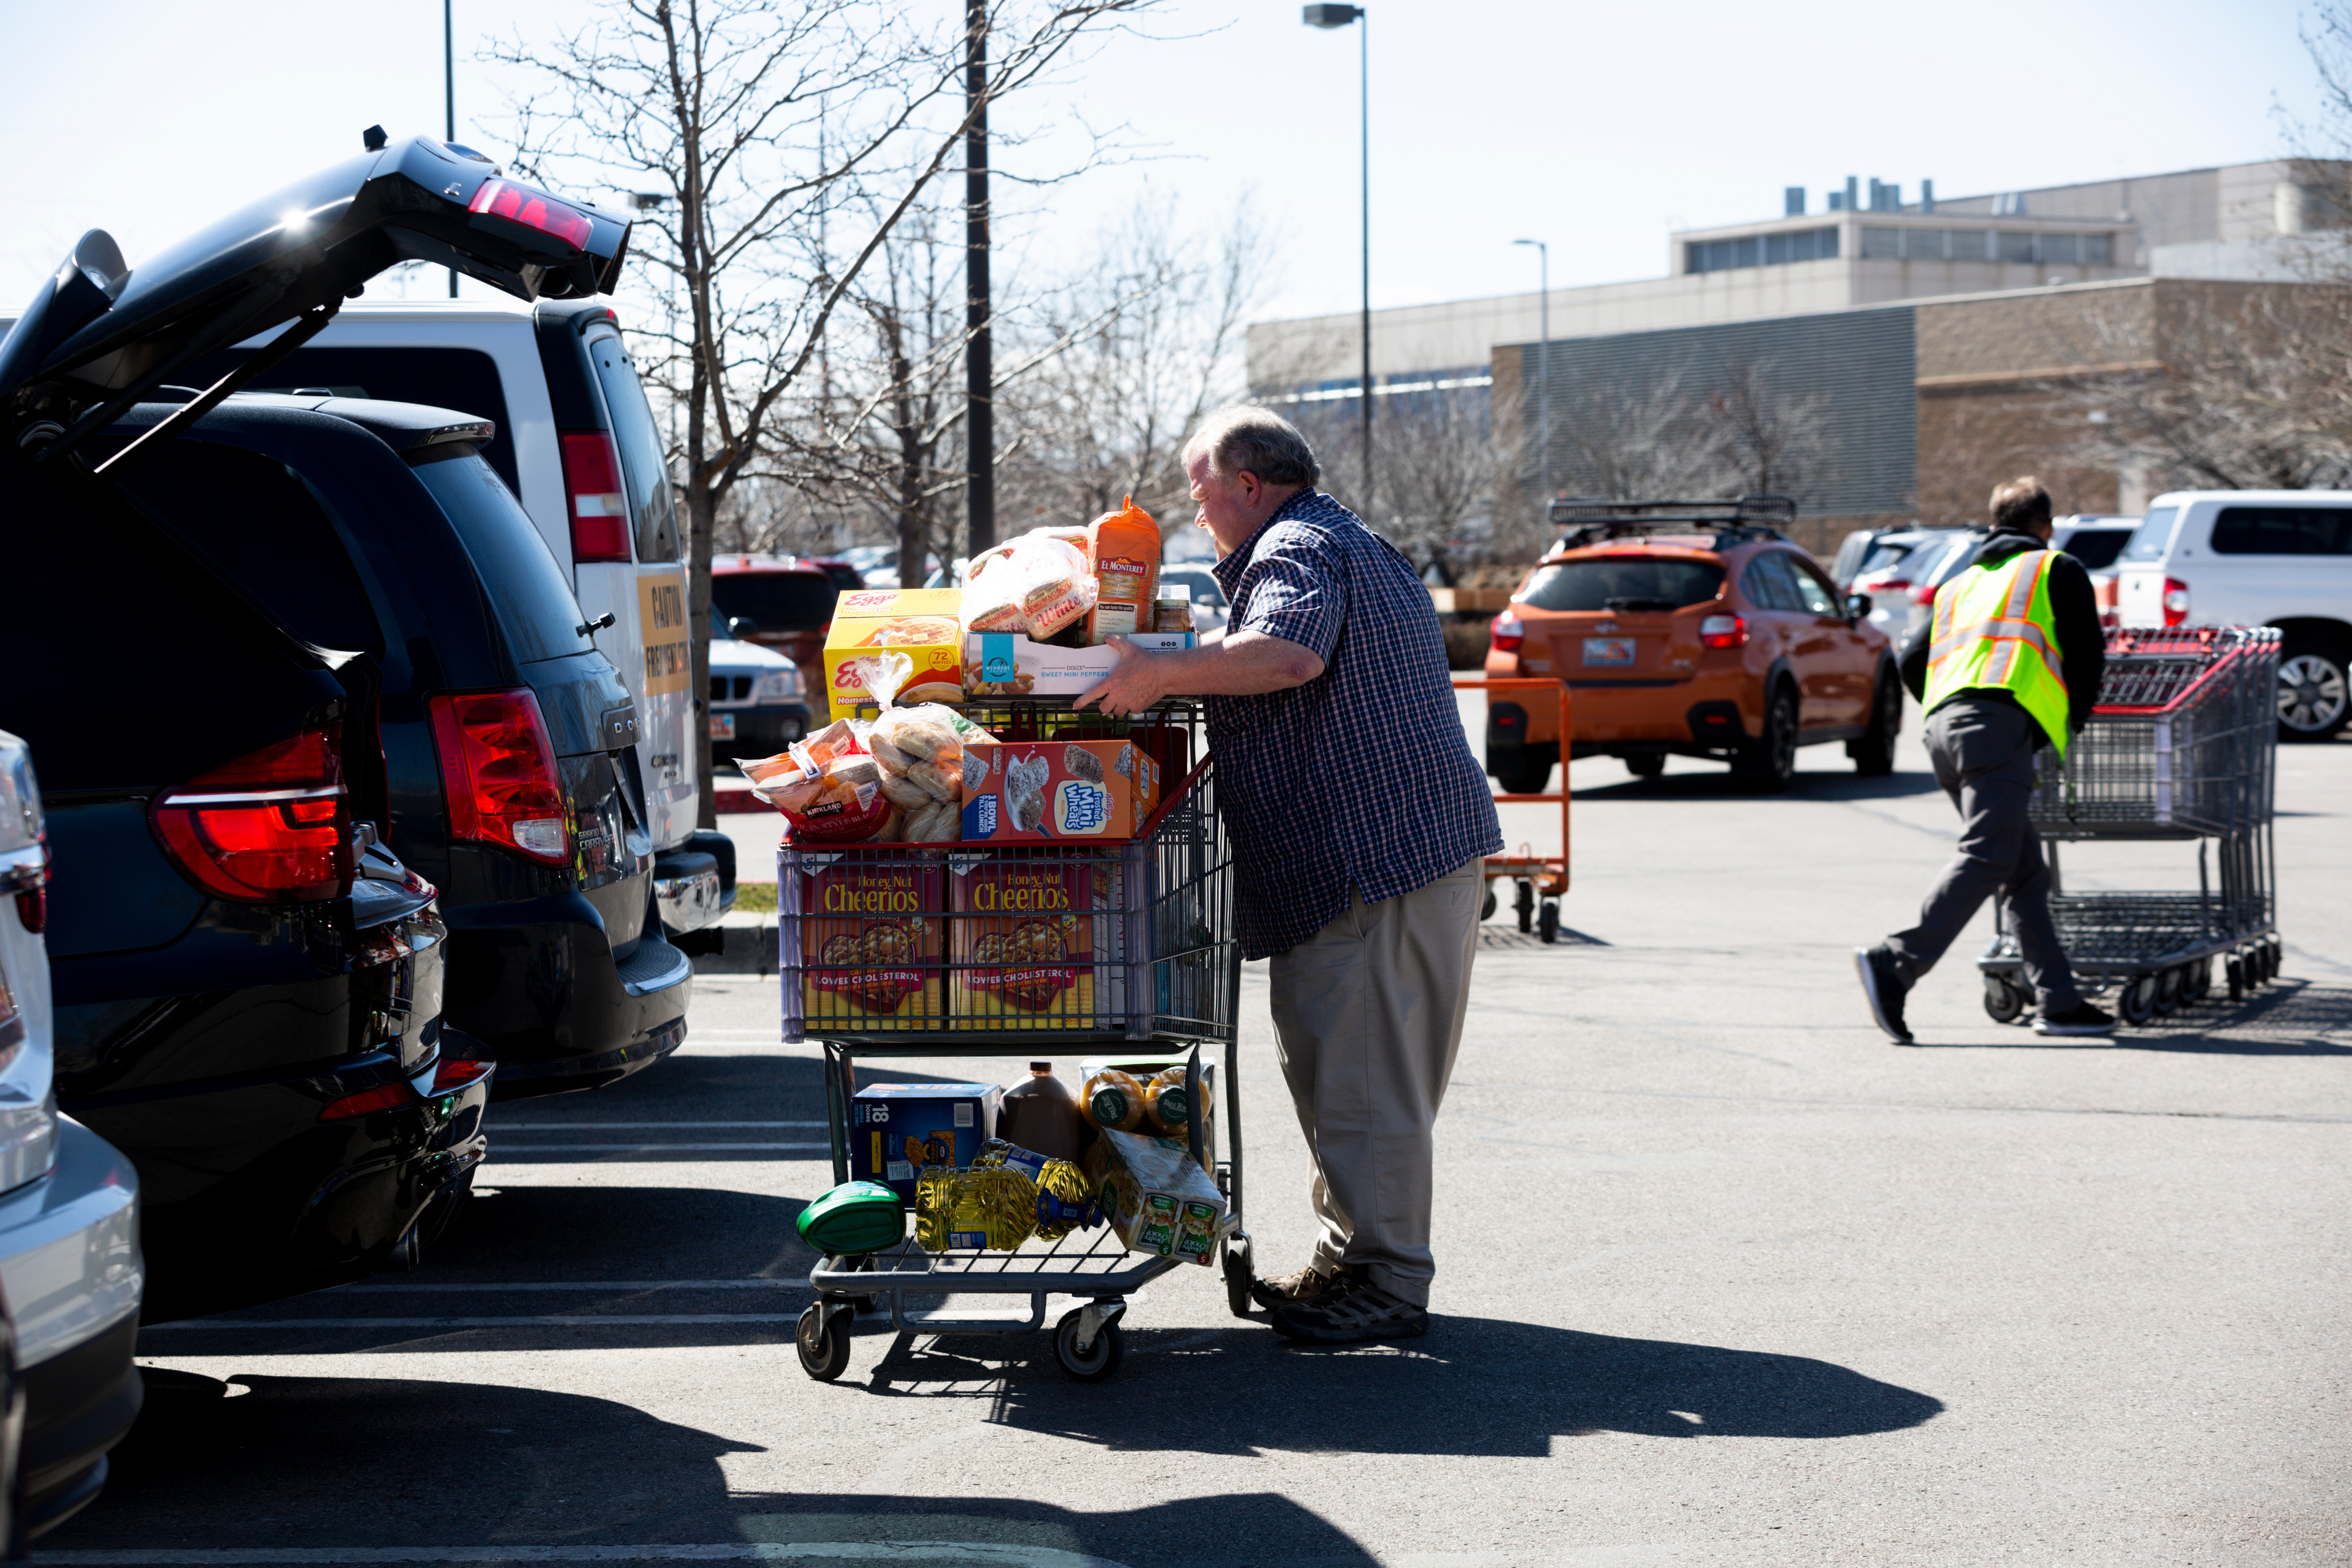 Jeff Duke loads items into the trunk of his car in the Costco parking lot in Murray on Thursday, March 12, 2020. Many shoppers were stocking up on items as the coronavirus spreads.